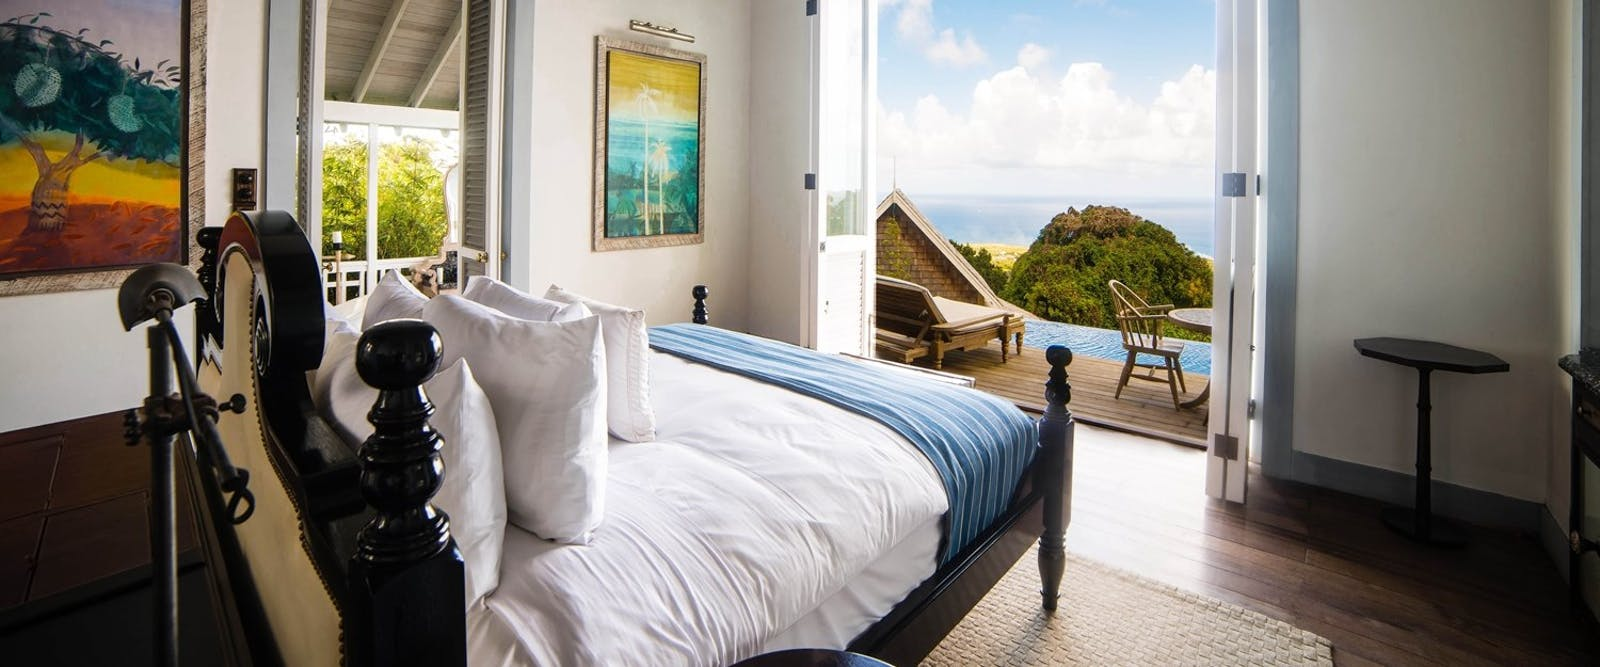 Bedroom with Beautiful View at Belle Mont Farm, St Kitts